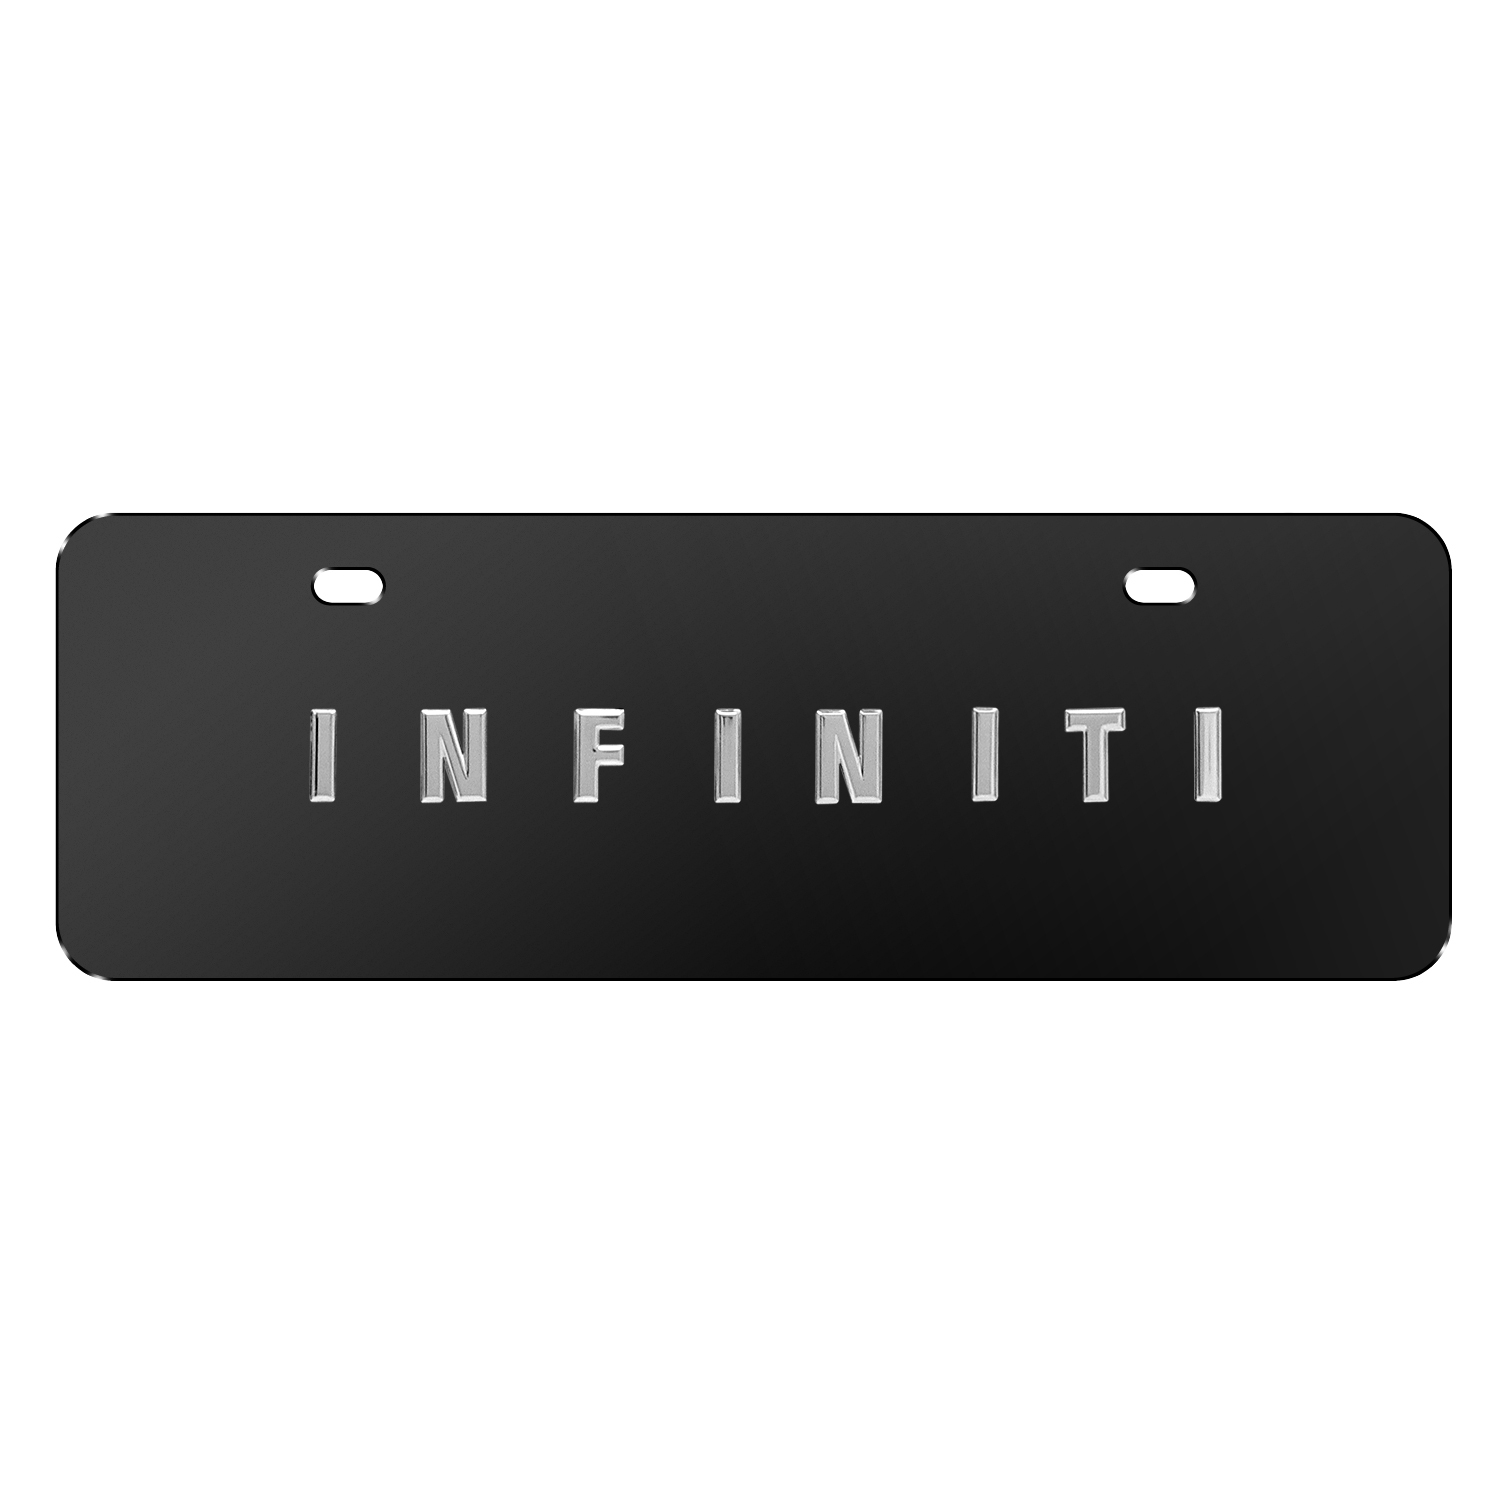 """INFINITI Name Black 12""""x4"""" Half-Size Stainless Steel License Plate"""